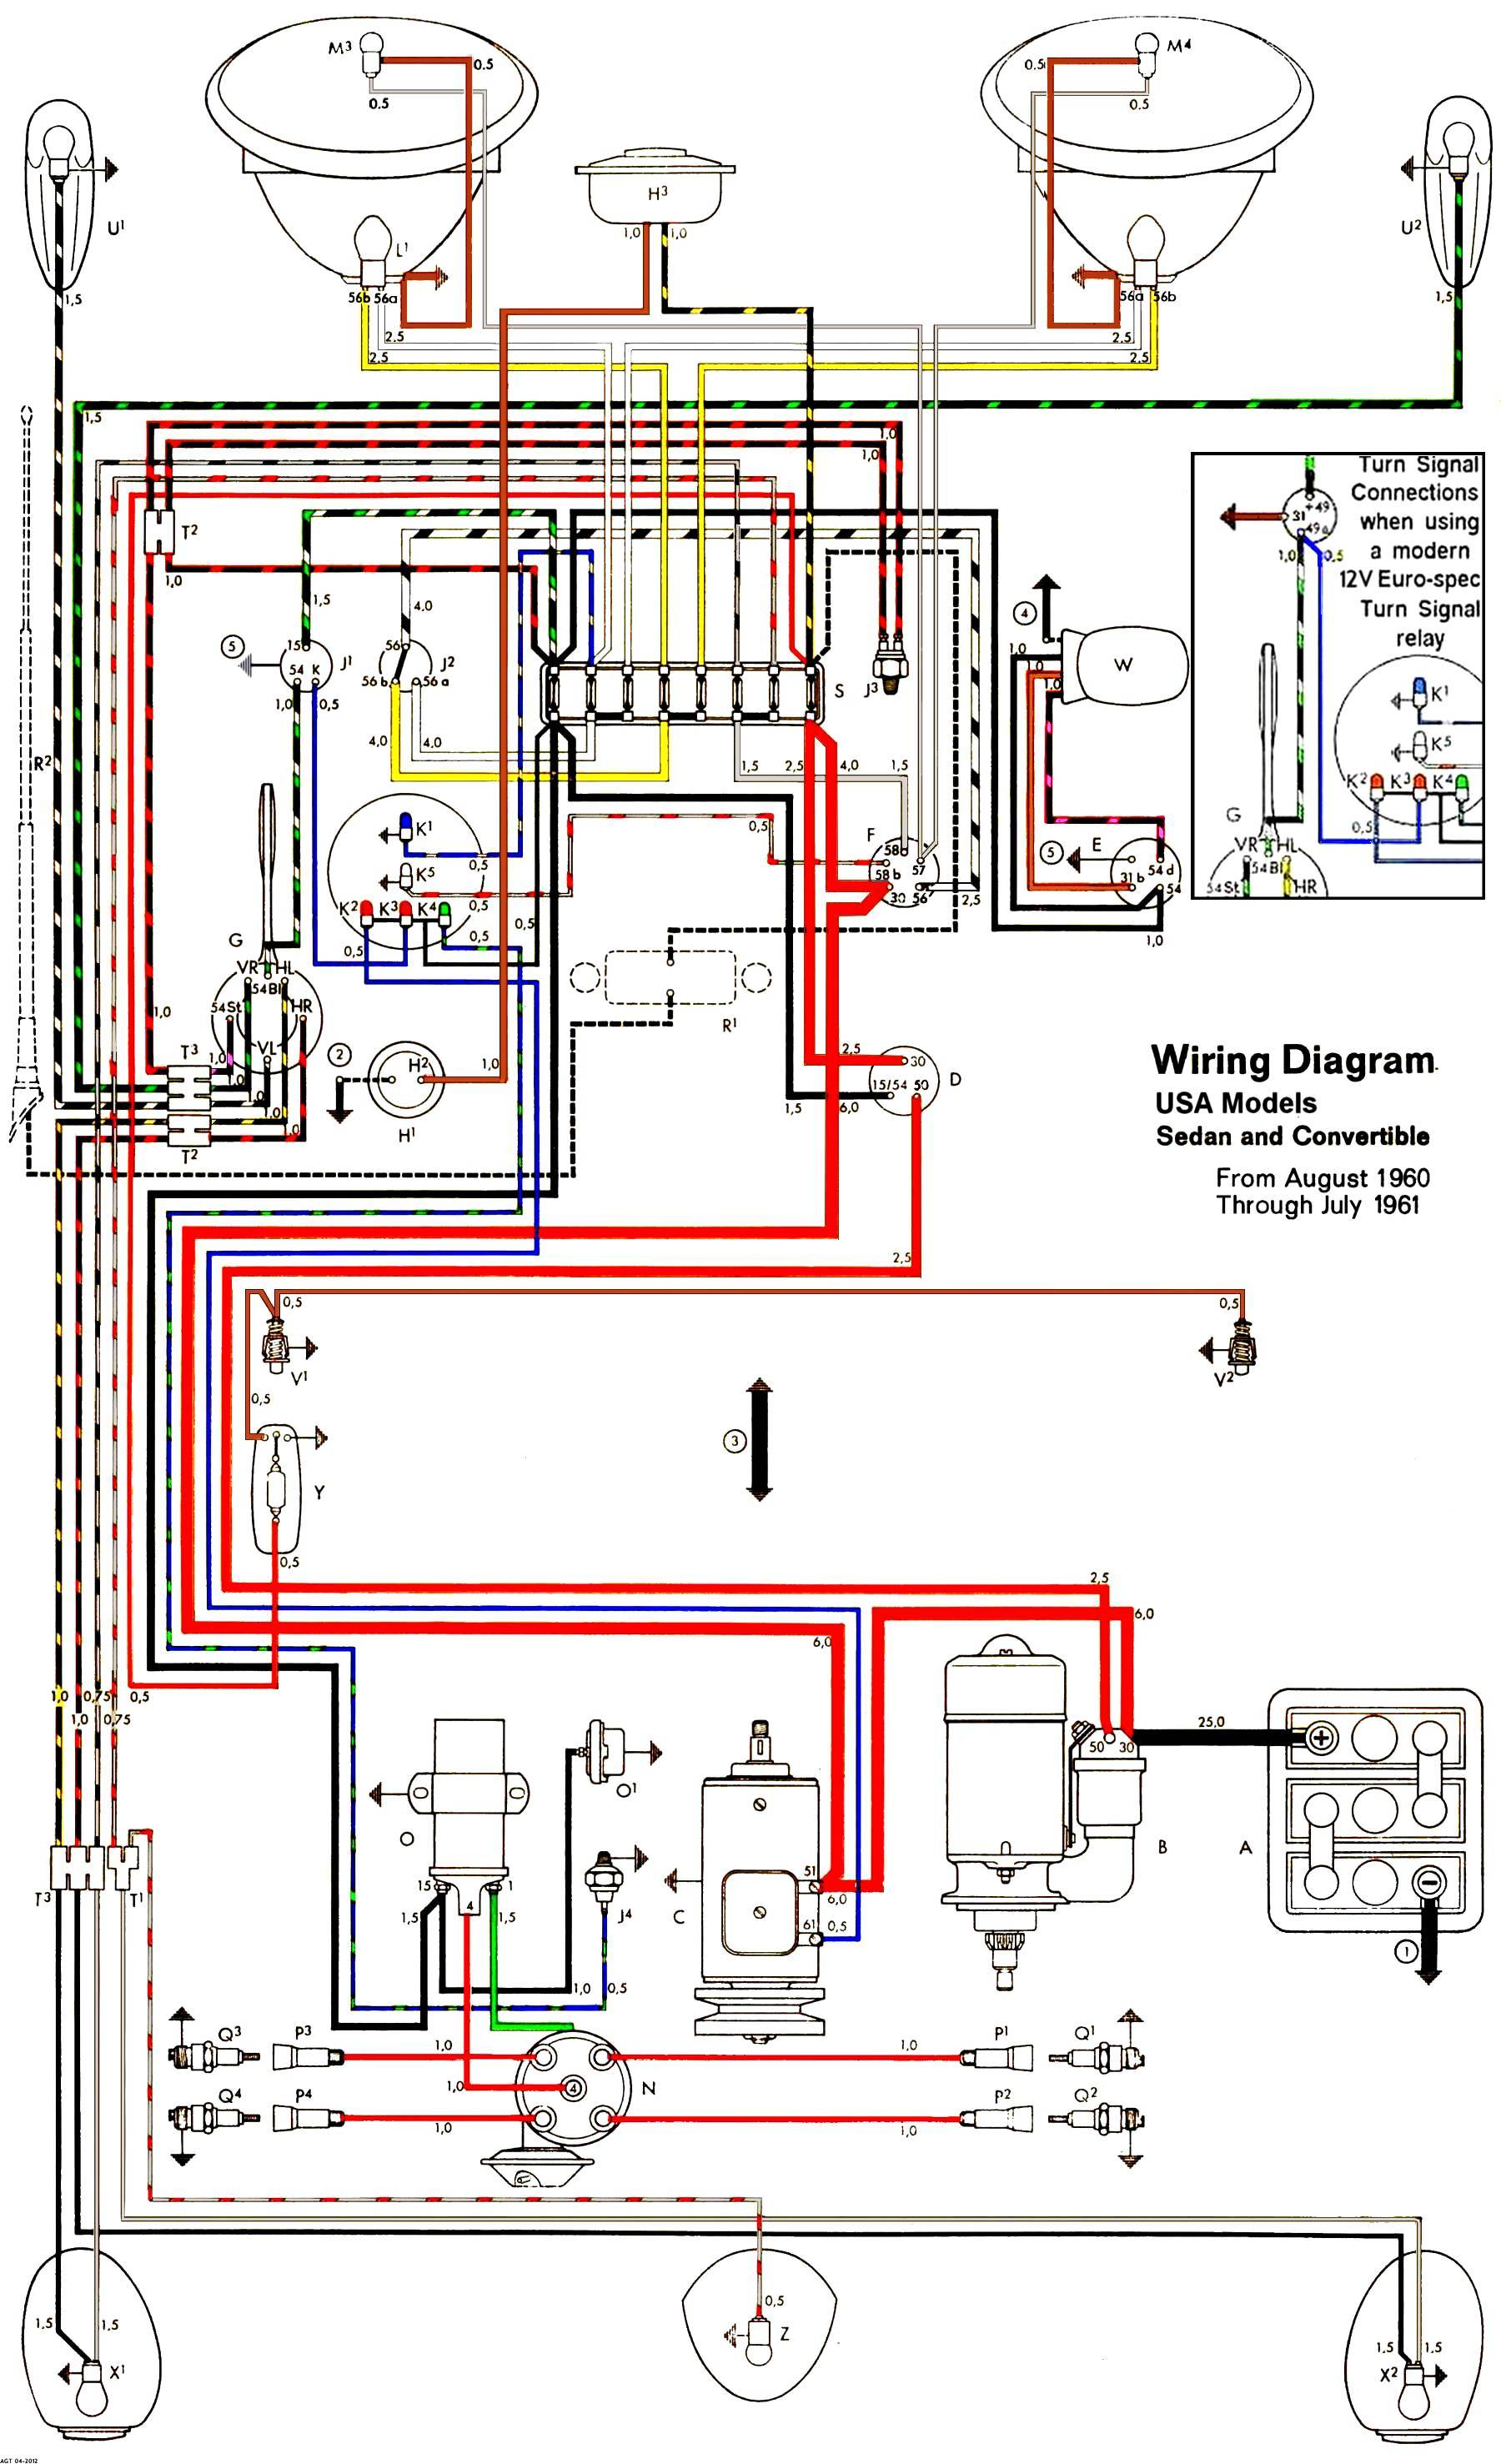 1959 ford pickup wiring wiring diagram1959 ford f100 headlight switch wiring wiring diagram1960 vw bug wiring wiring diagram librarythesamba com type